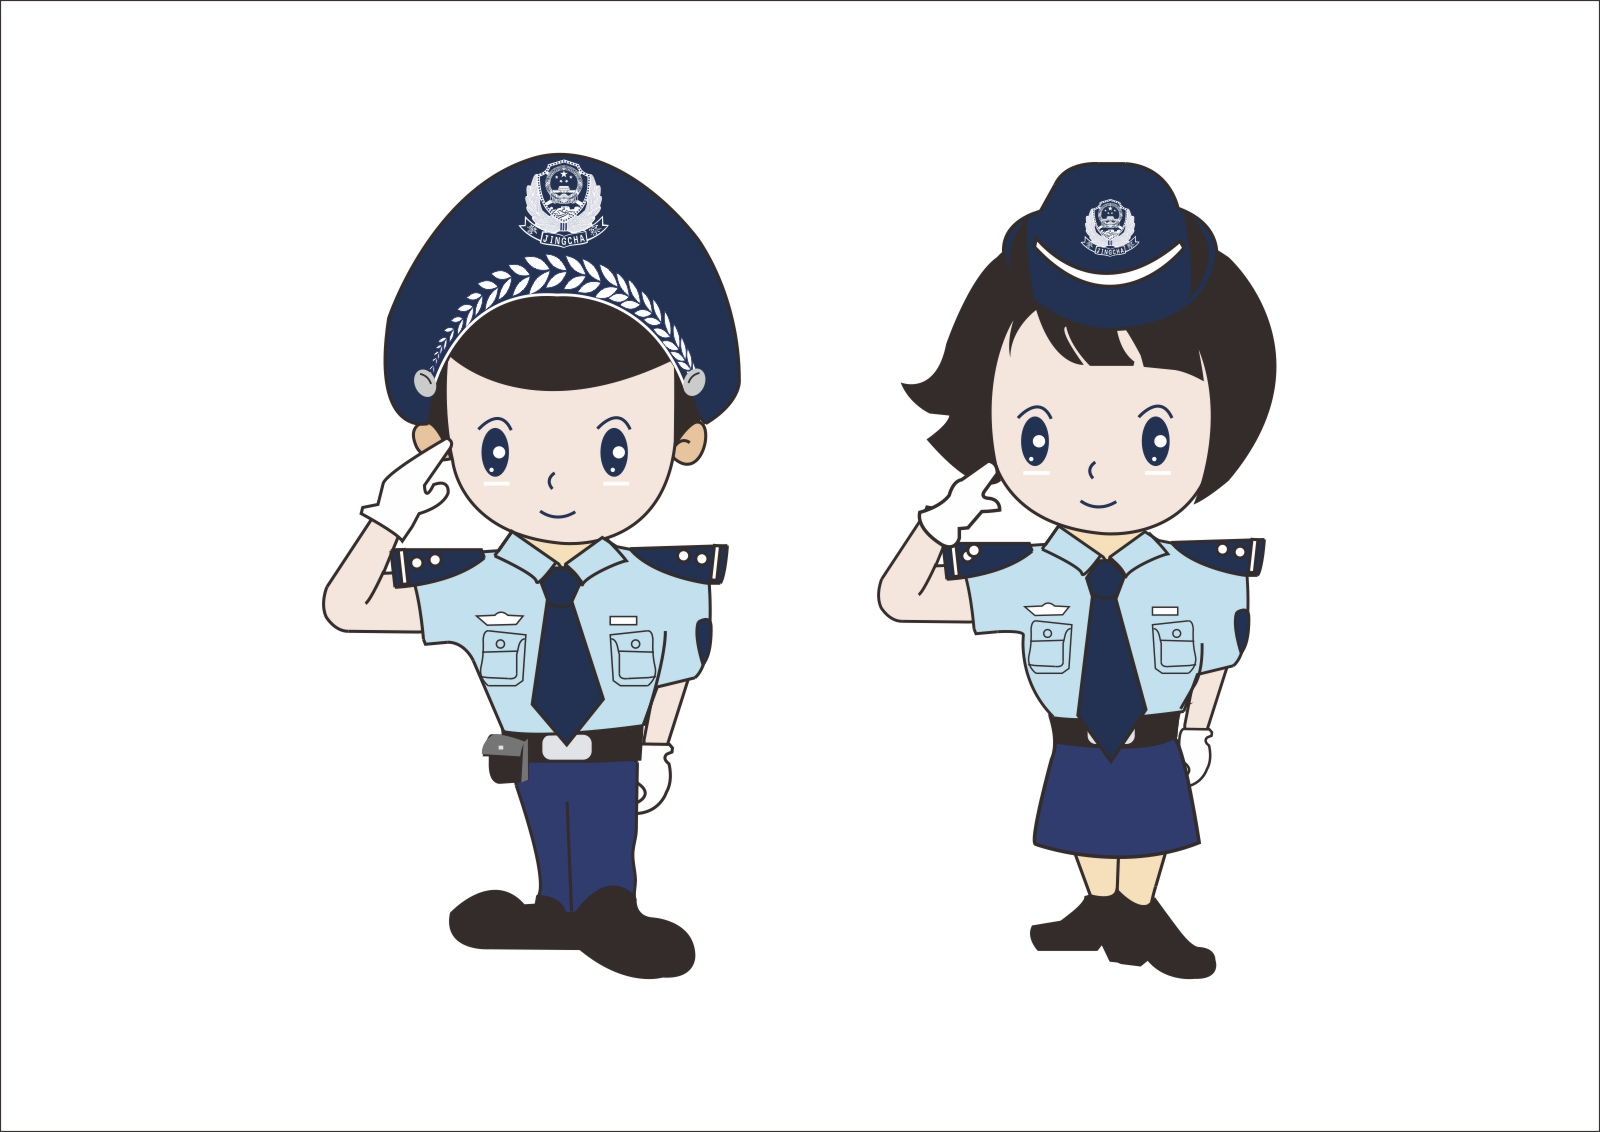 chinesefontdesign.com 2017 03 19 09 05 09 Cute cartoon modelling of the Chinese police CorelDRAW Vectors CDR Free Download Chinese police cdr